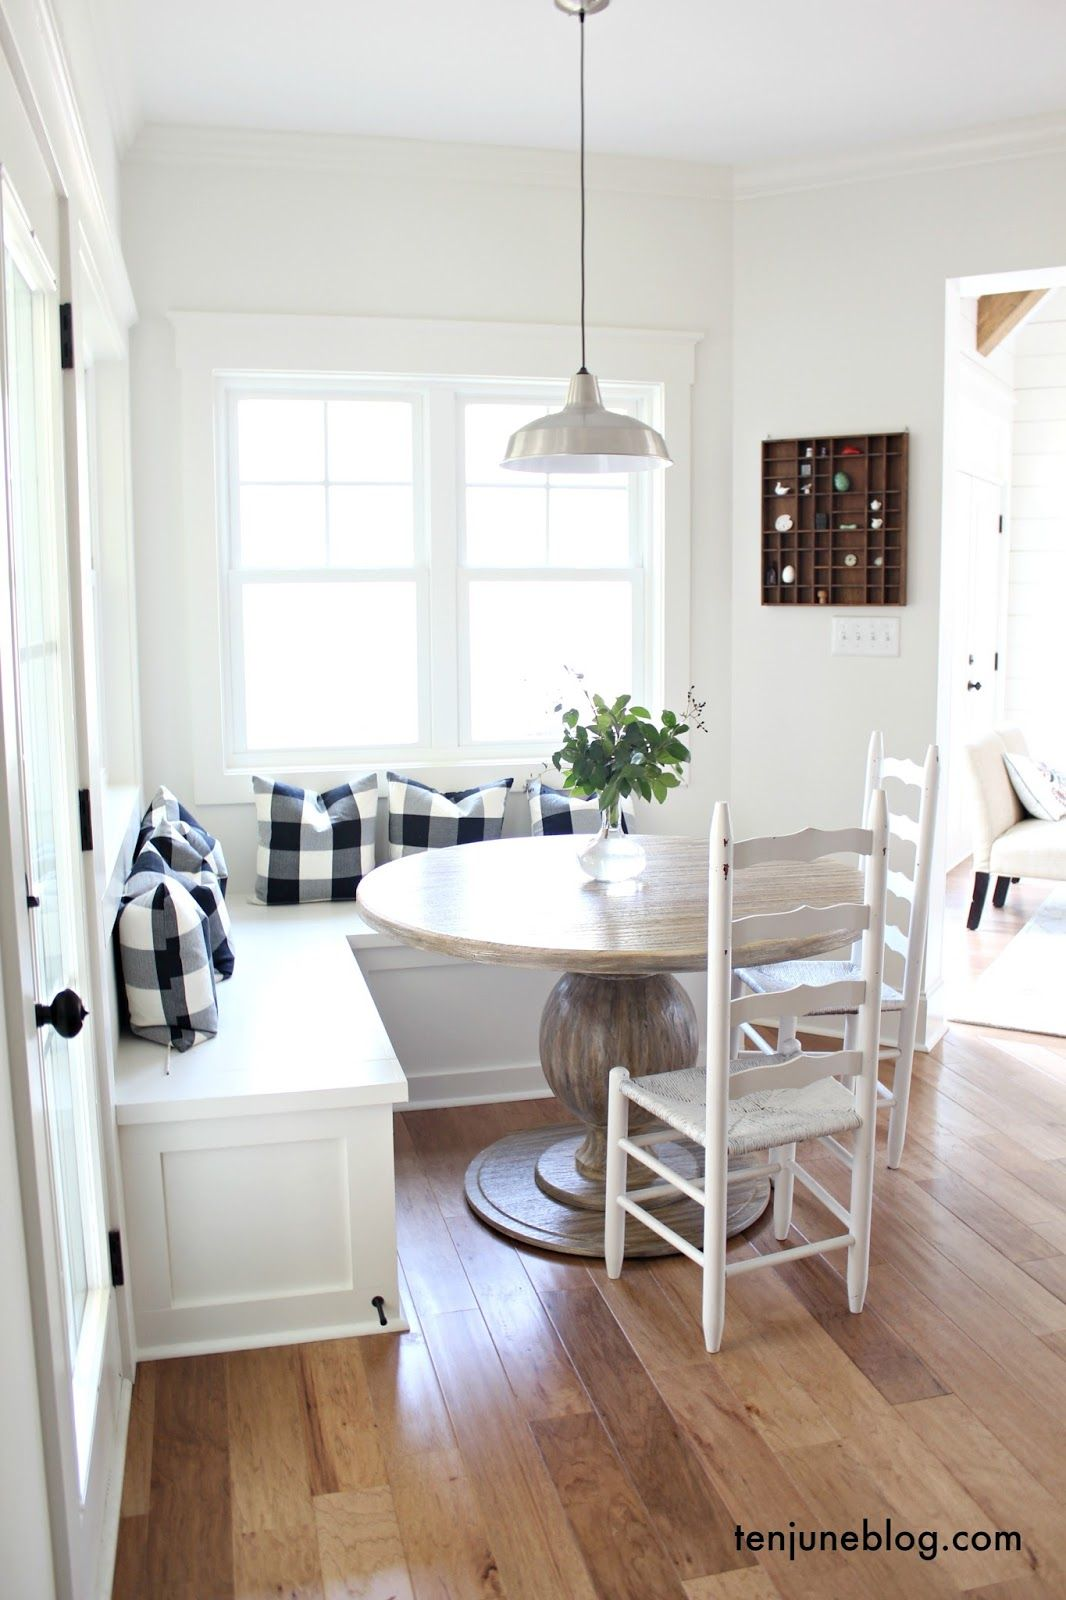 Ten June A Farmhouse Buffalo Check Built In Breakfast Nook White Painted Built In Benches Windows Light Ha Dining Nook Diy Nook Bench Breakfast Nook Table